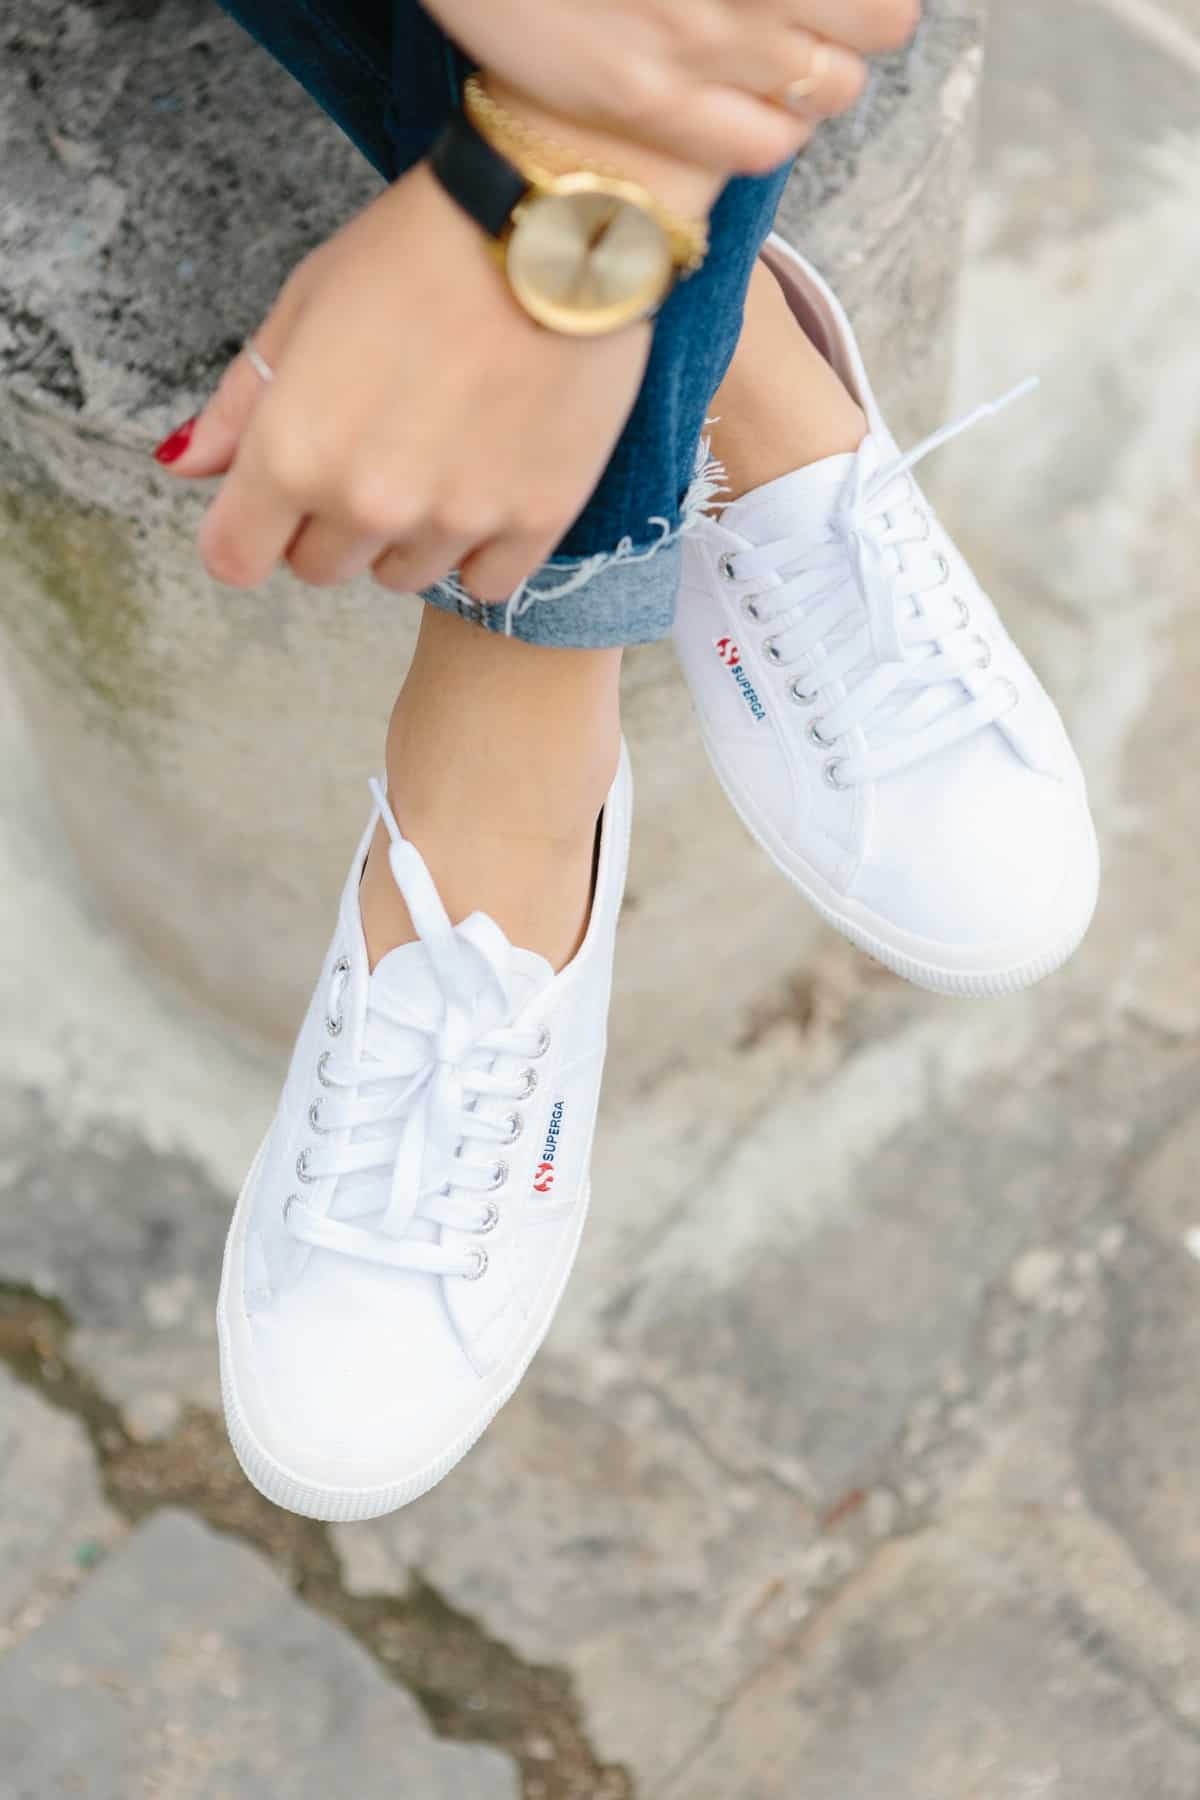 Supergas and jeans with a black and gold watch